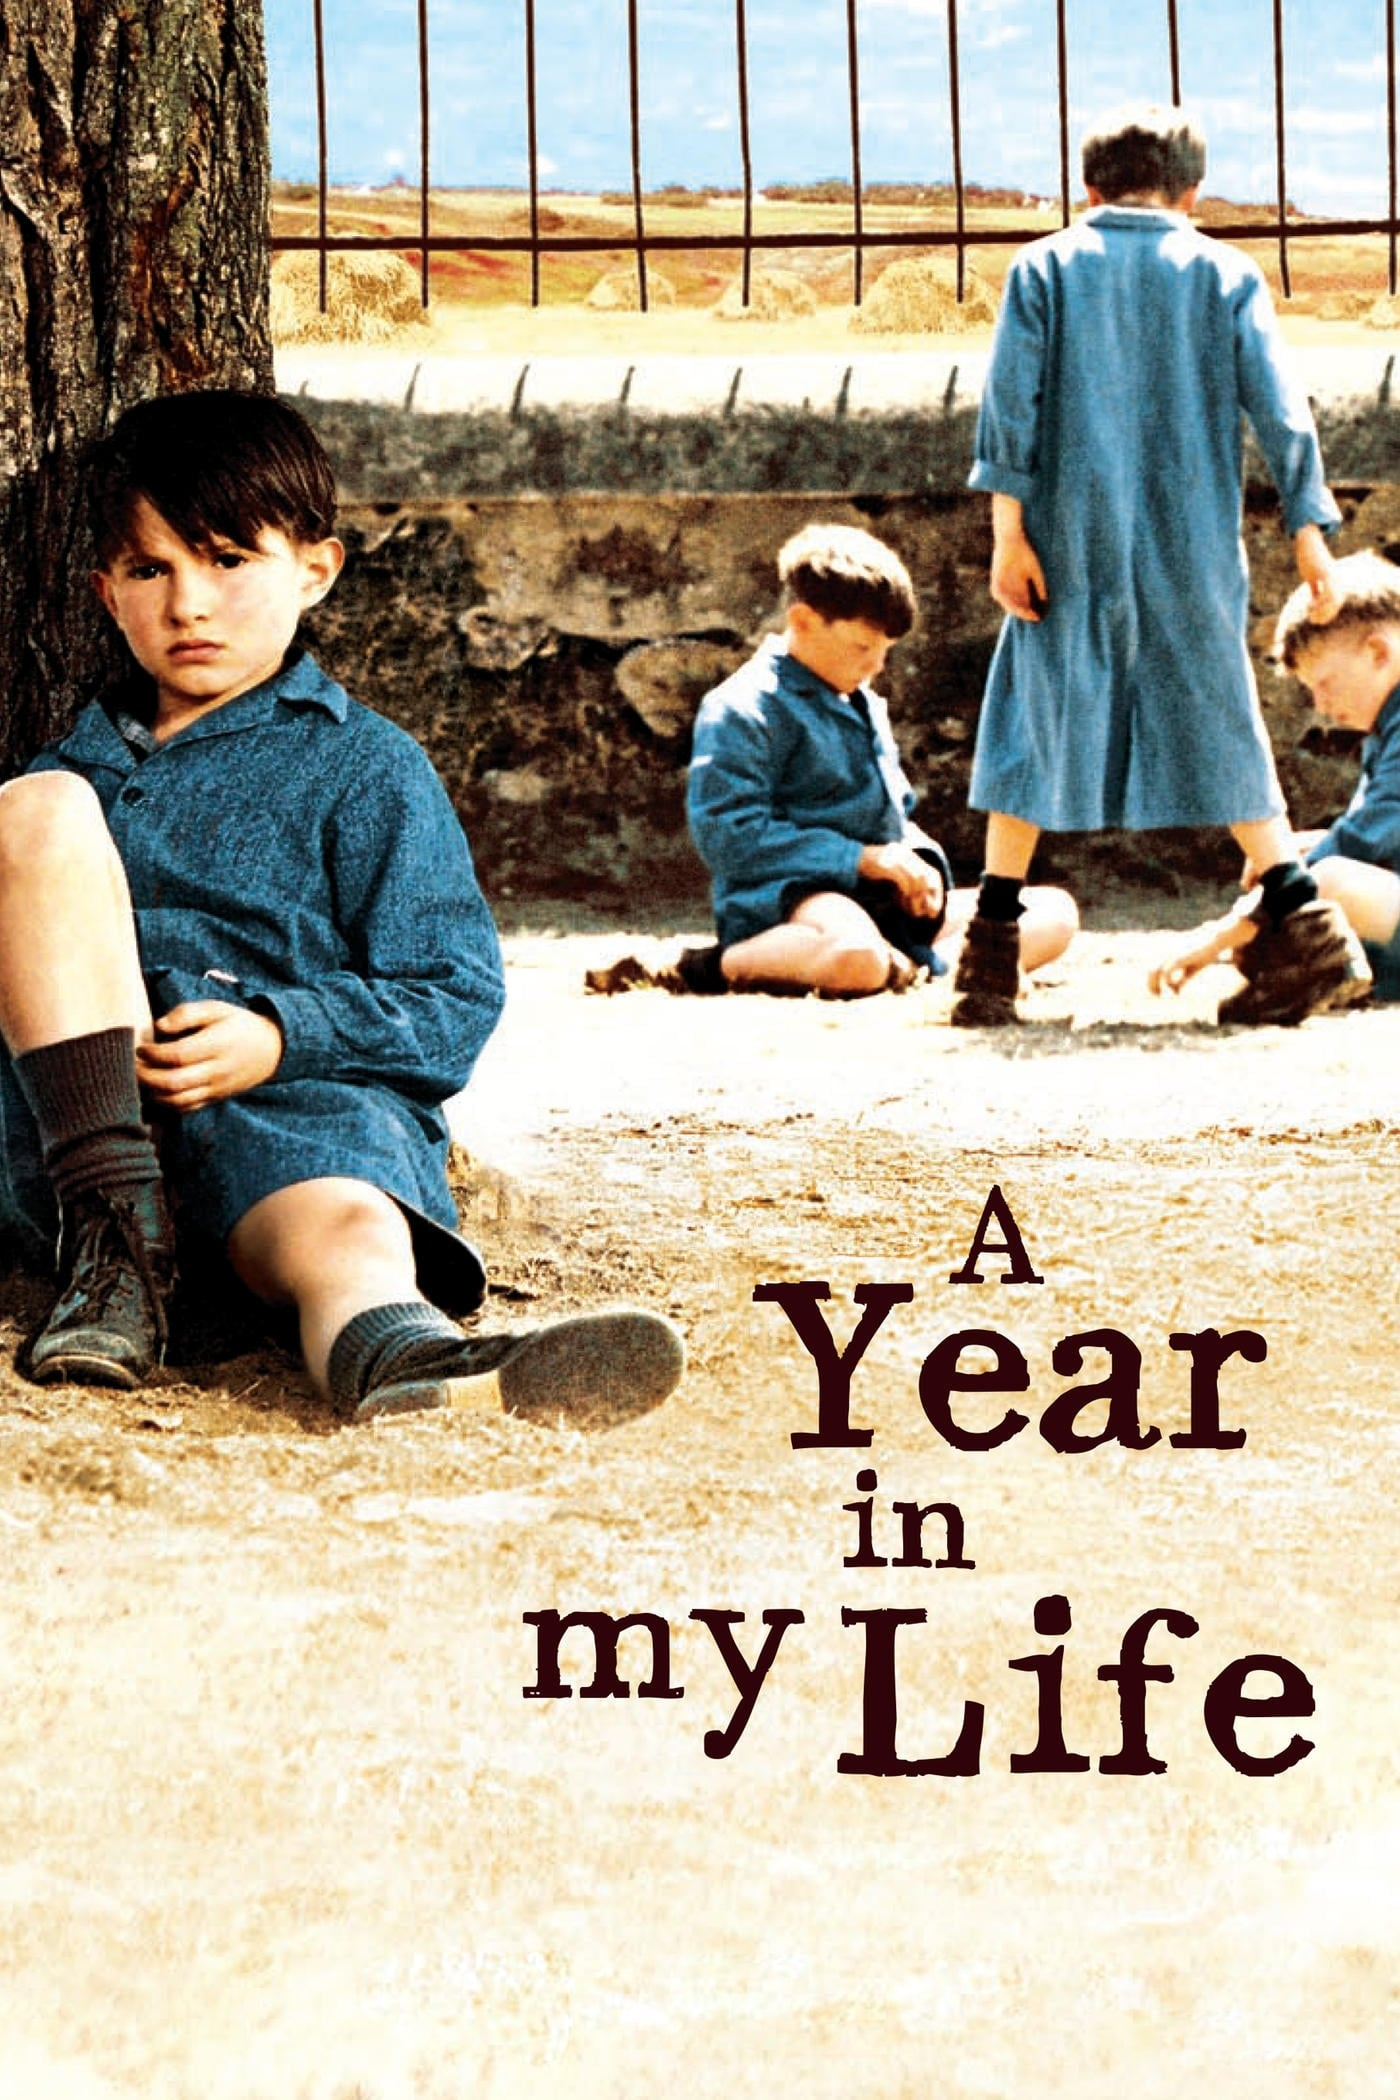 A Year in My Life (2006)